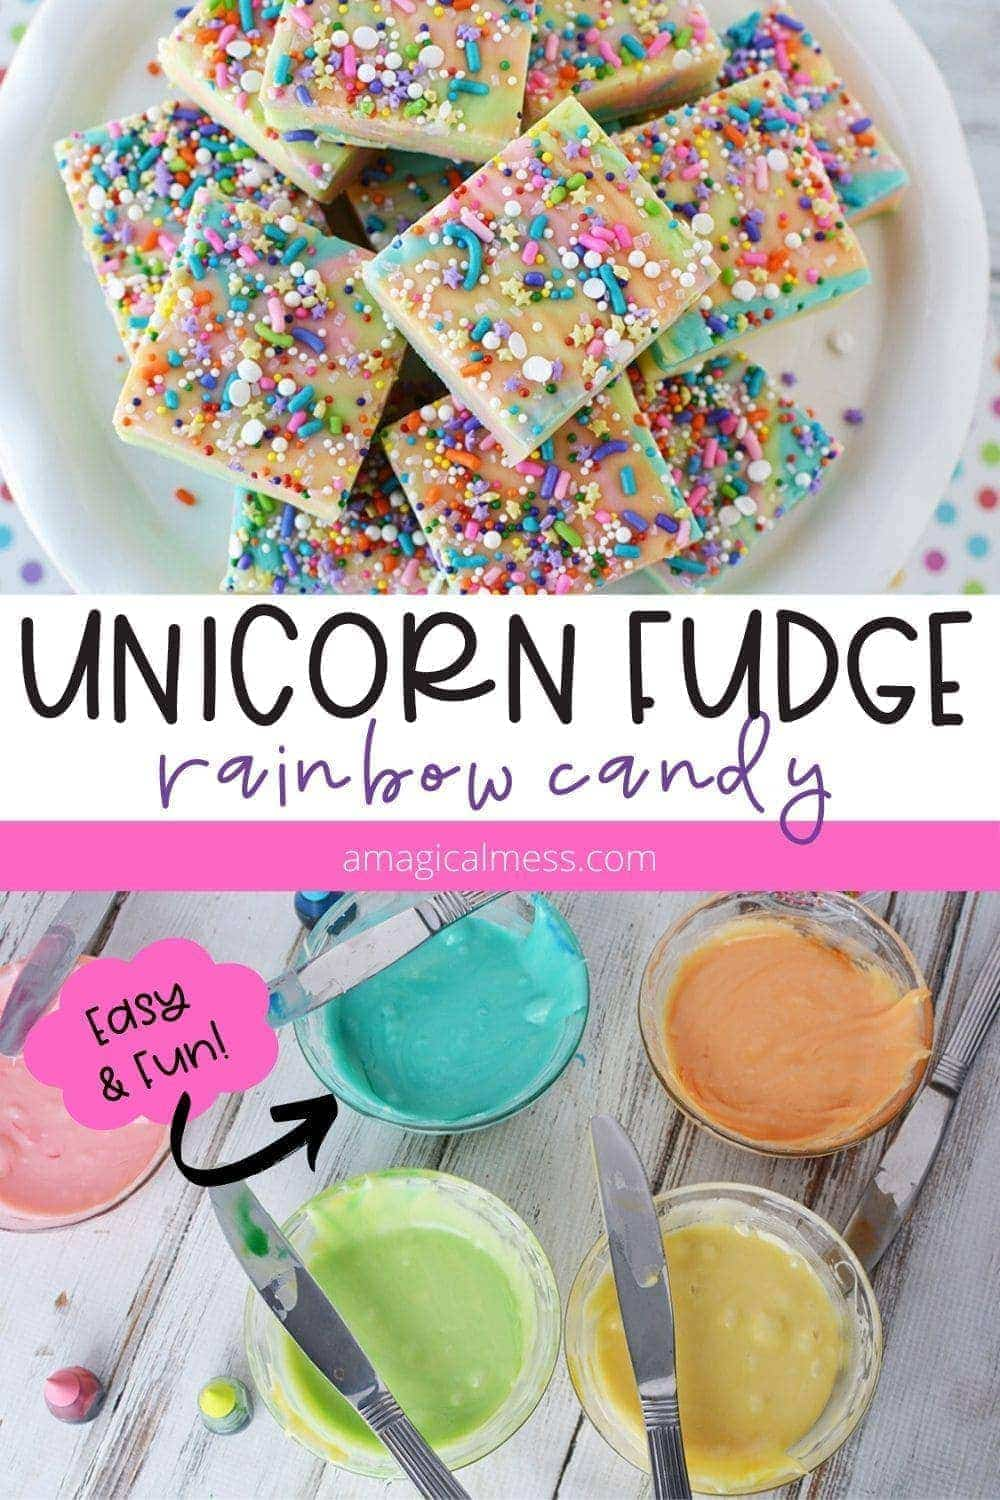 Unicorn fudge on a plate and colored in bowls